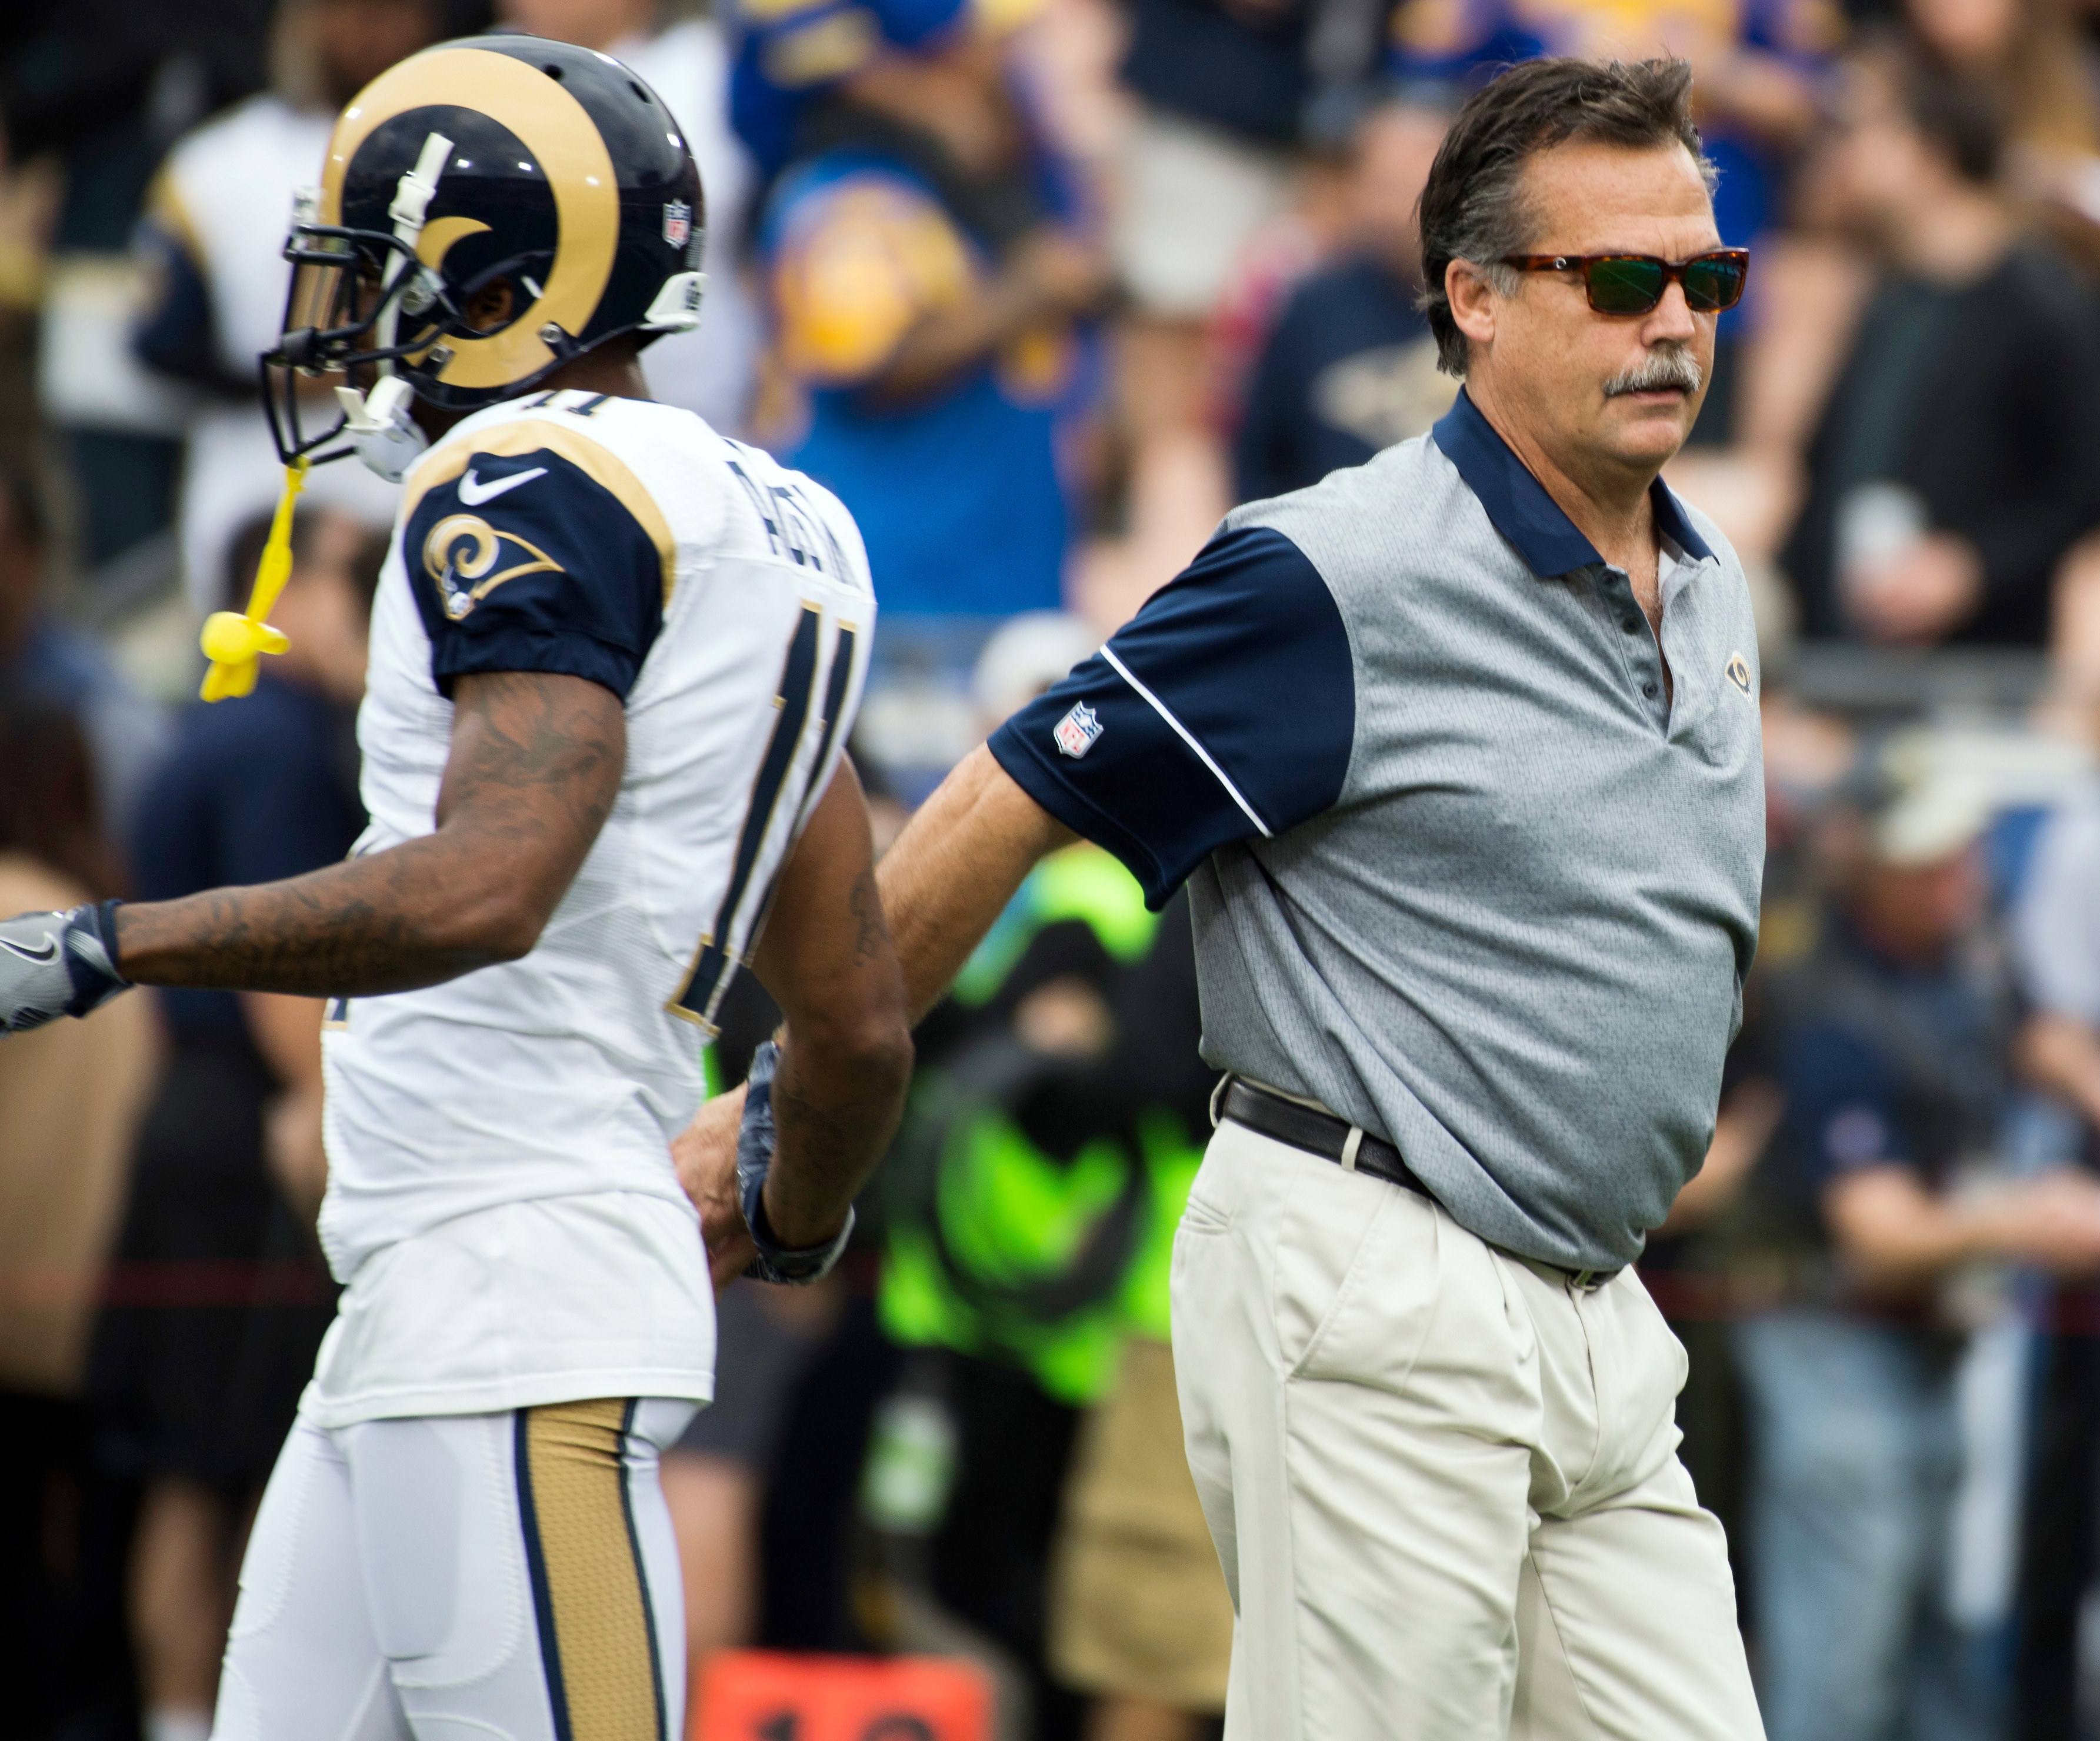 Los Angeles Rams WR Tavon Austin and Former Head Coach Jeff Fisher